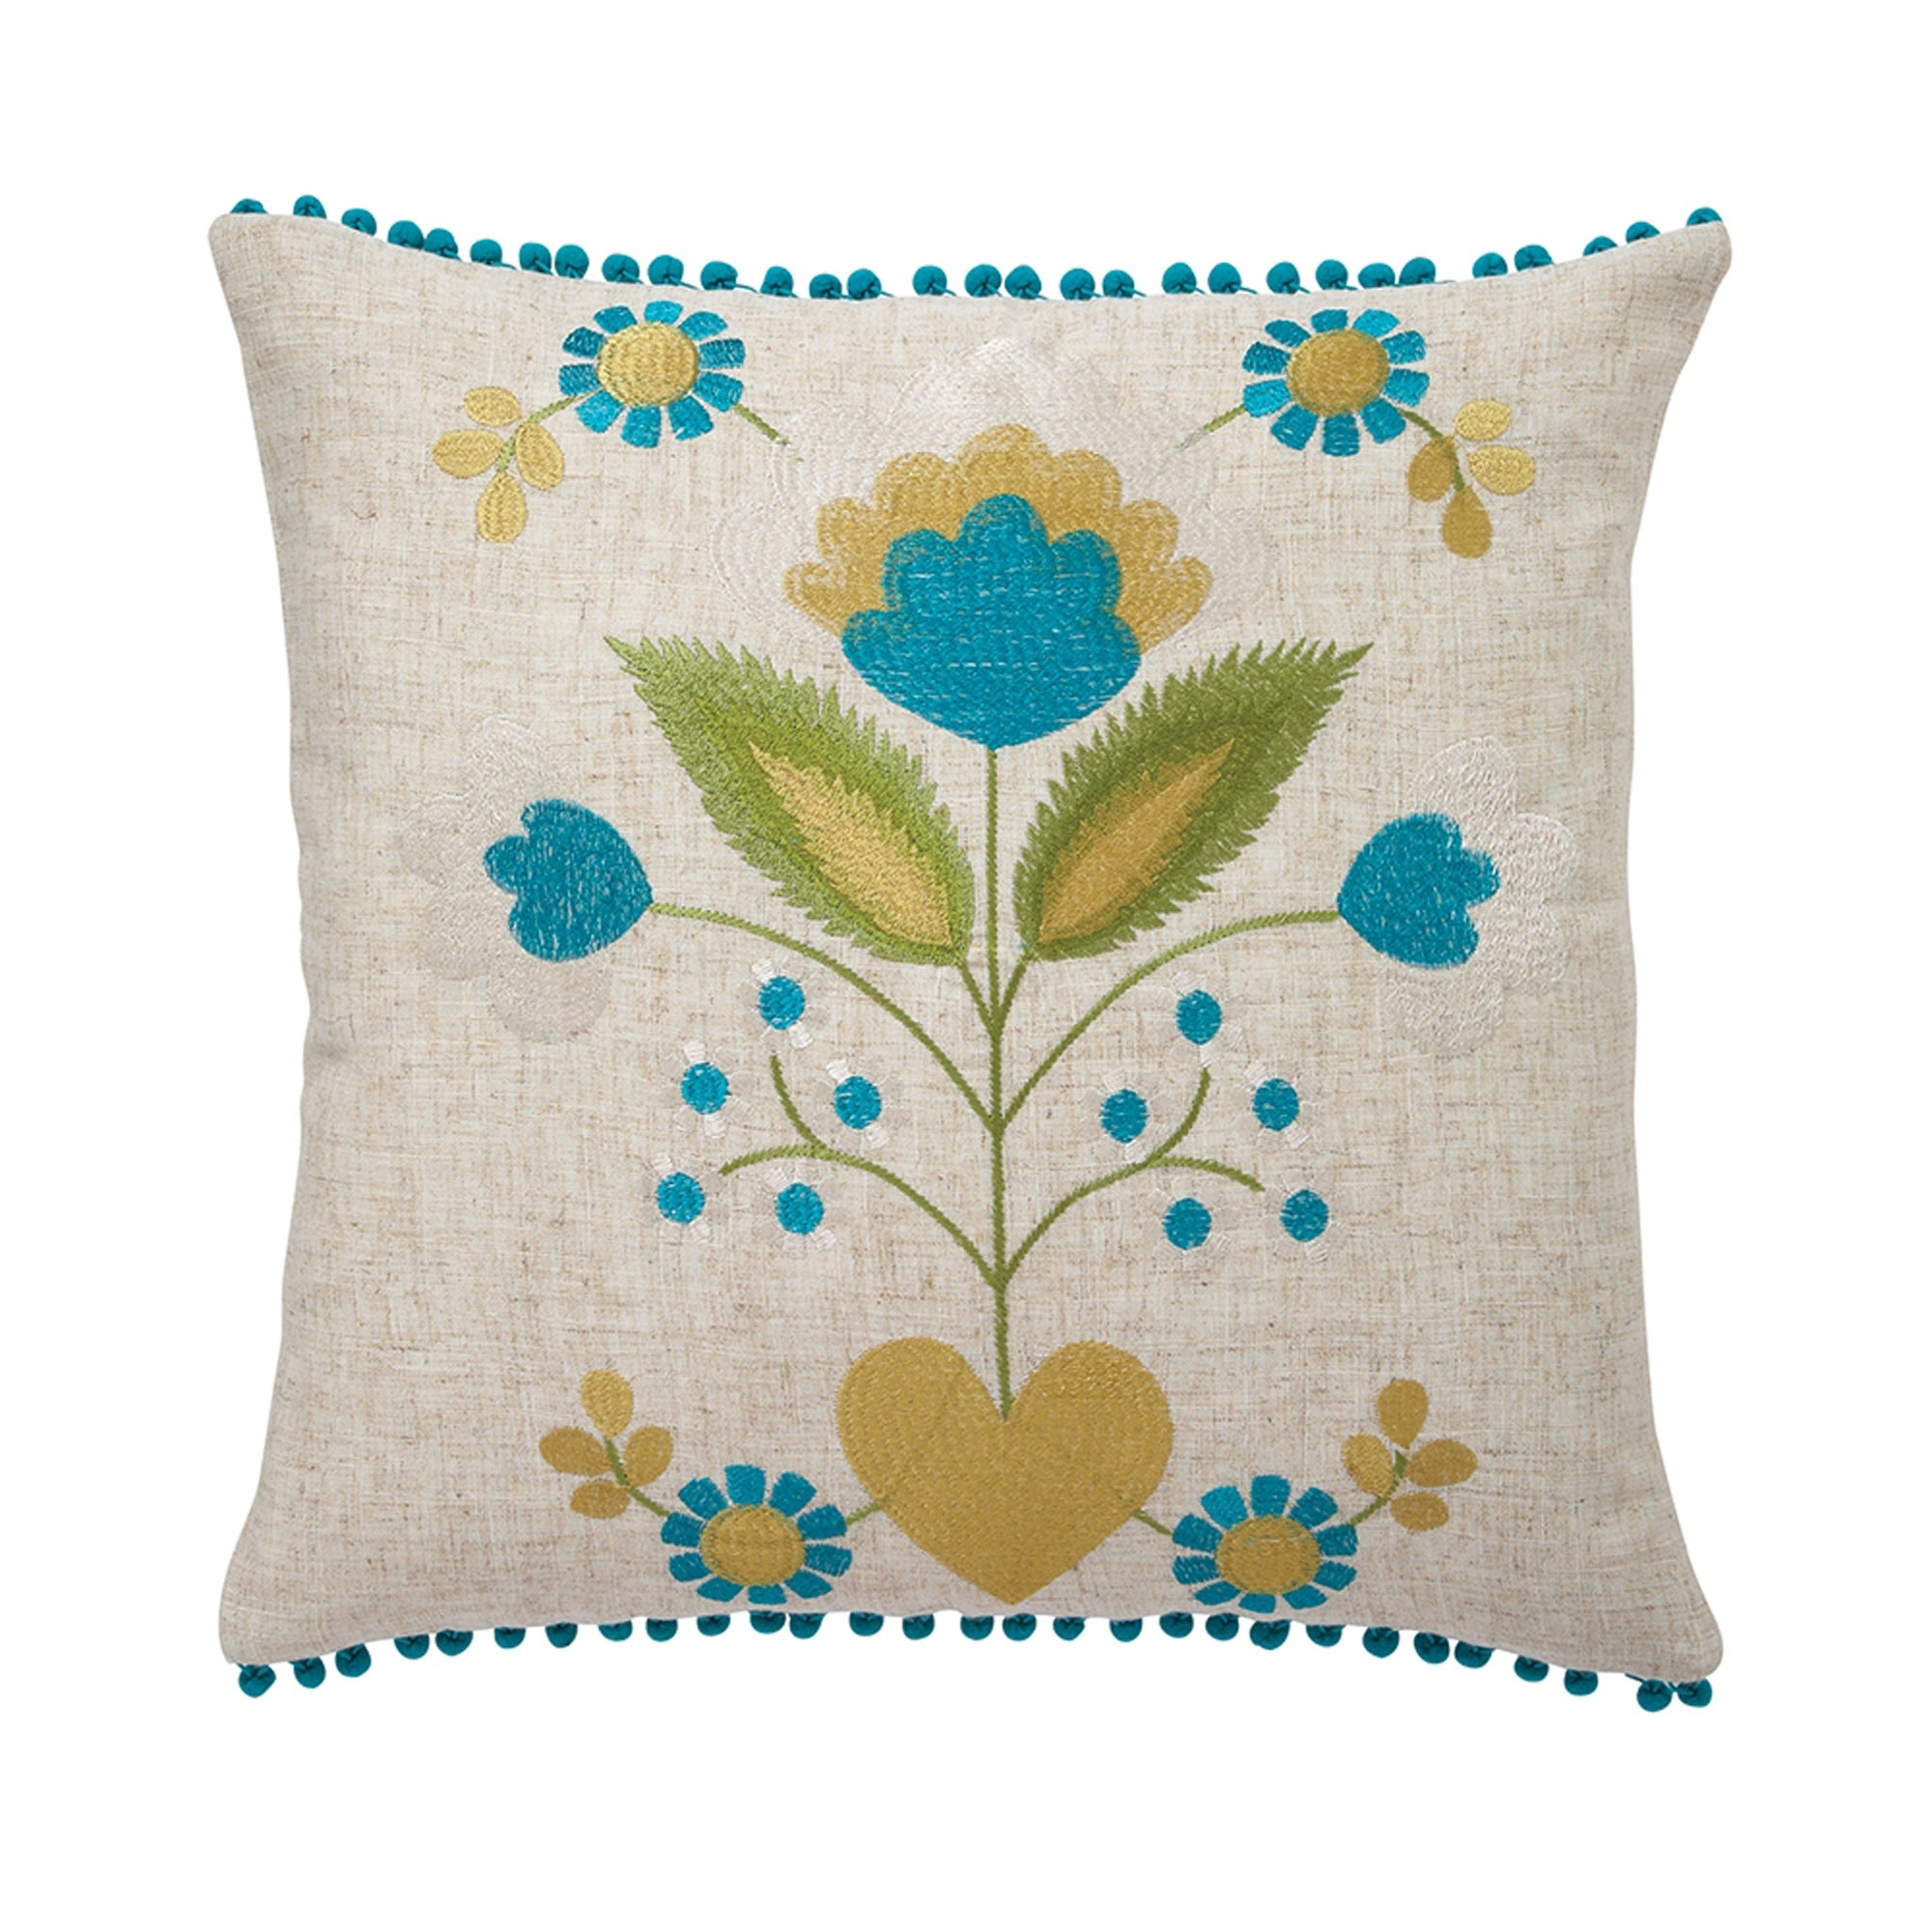 Teal Flower Pom Pom Cushion